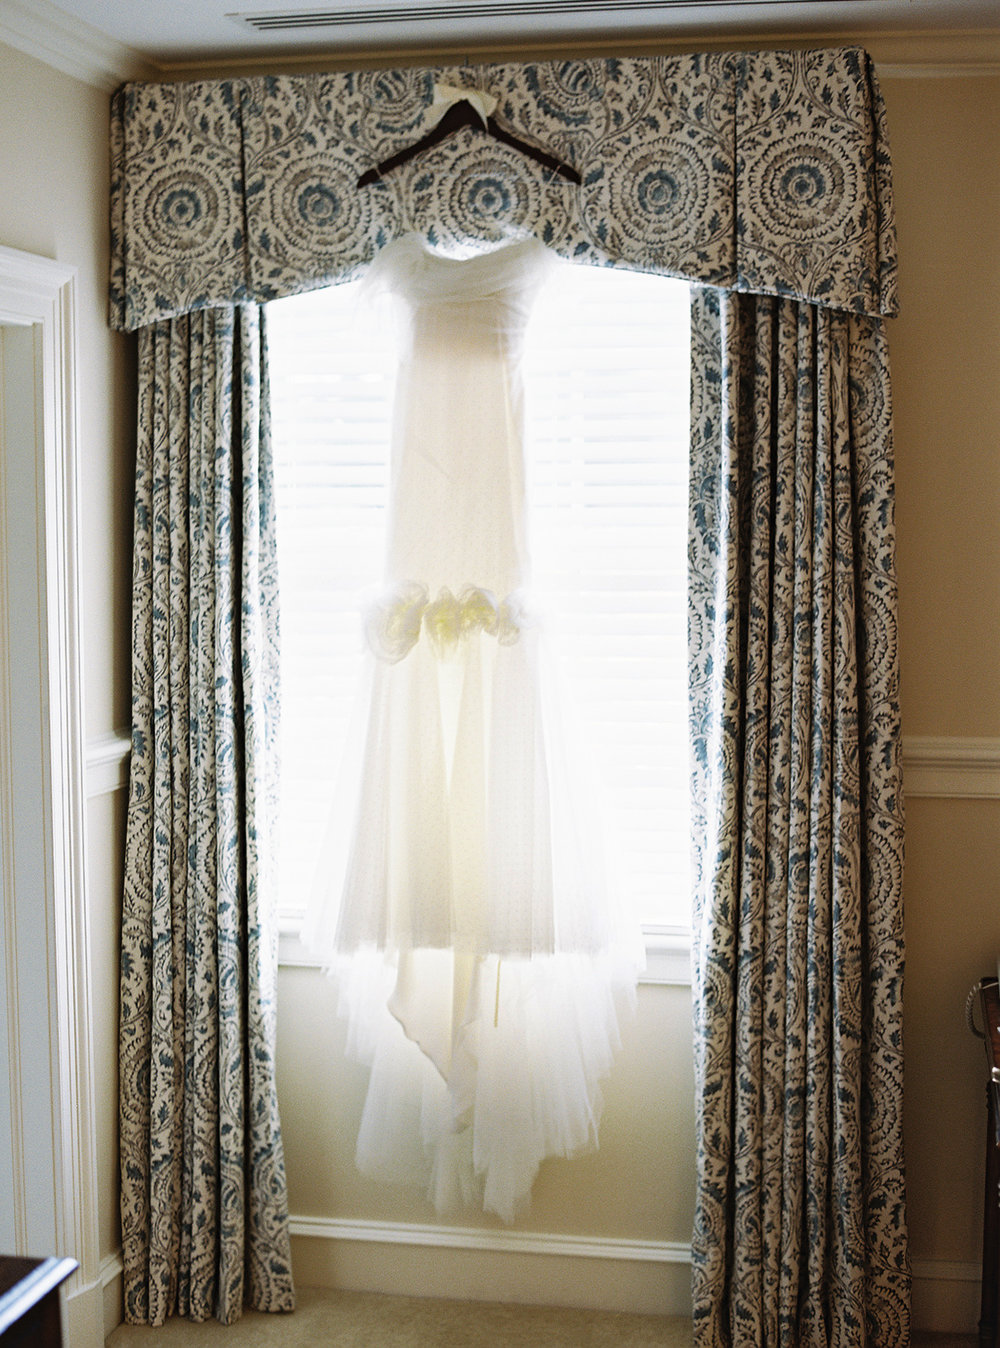 0138adam barnes photography keswick hall charlottesville virginia wedding.jpg